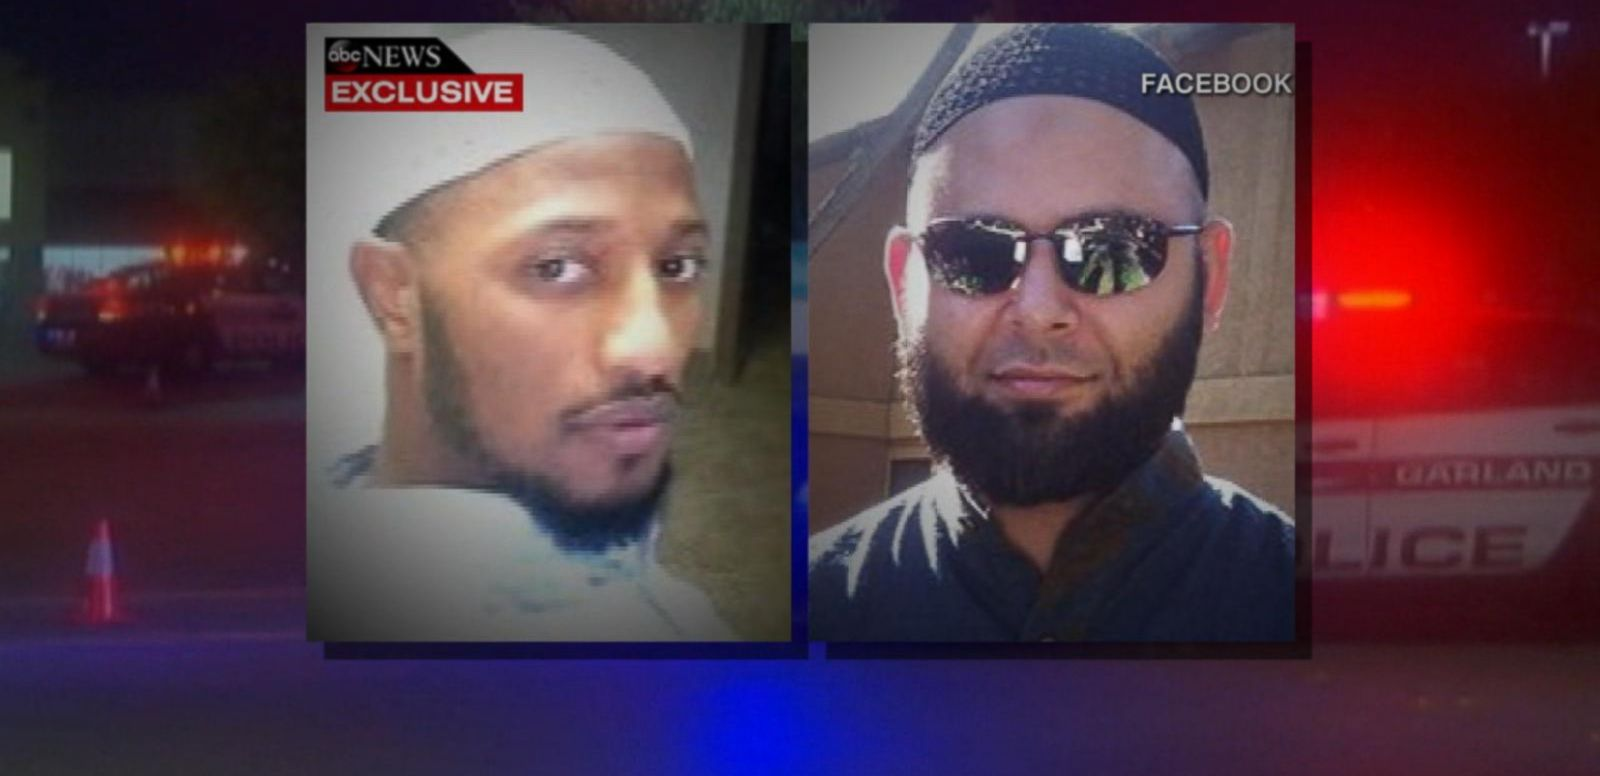 VIDEO: Garland Shooting: Suspect's Private Online Messages